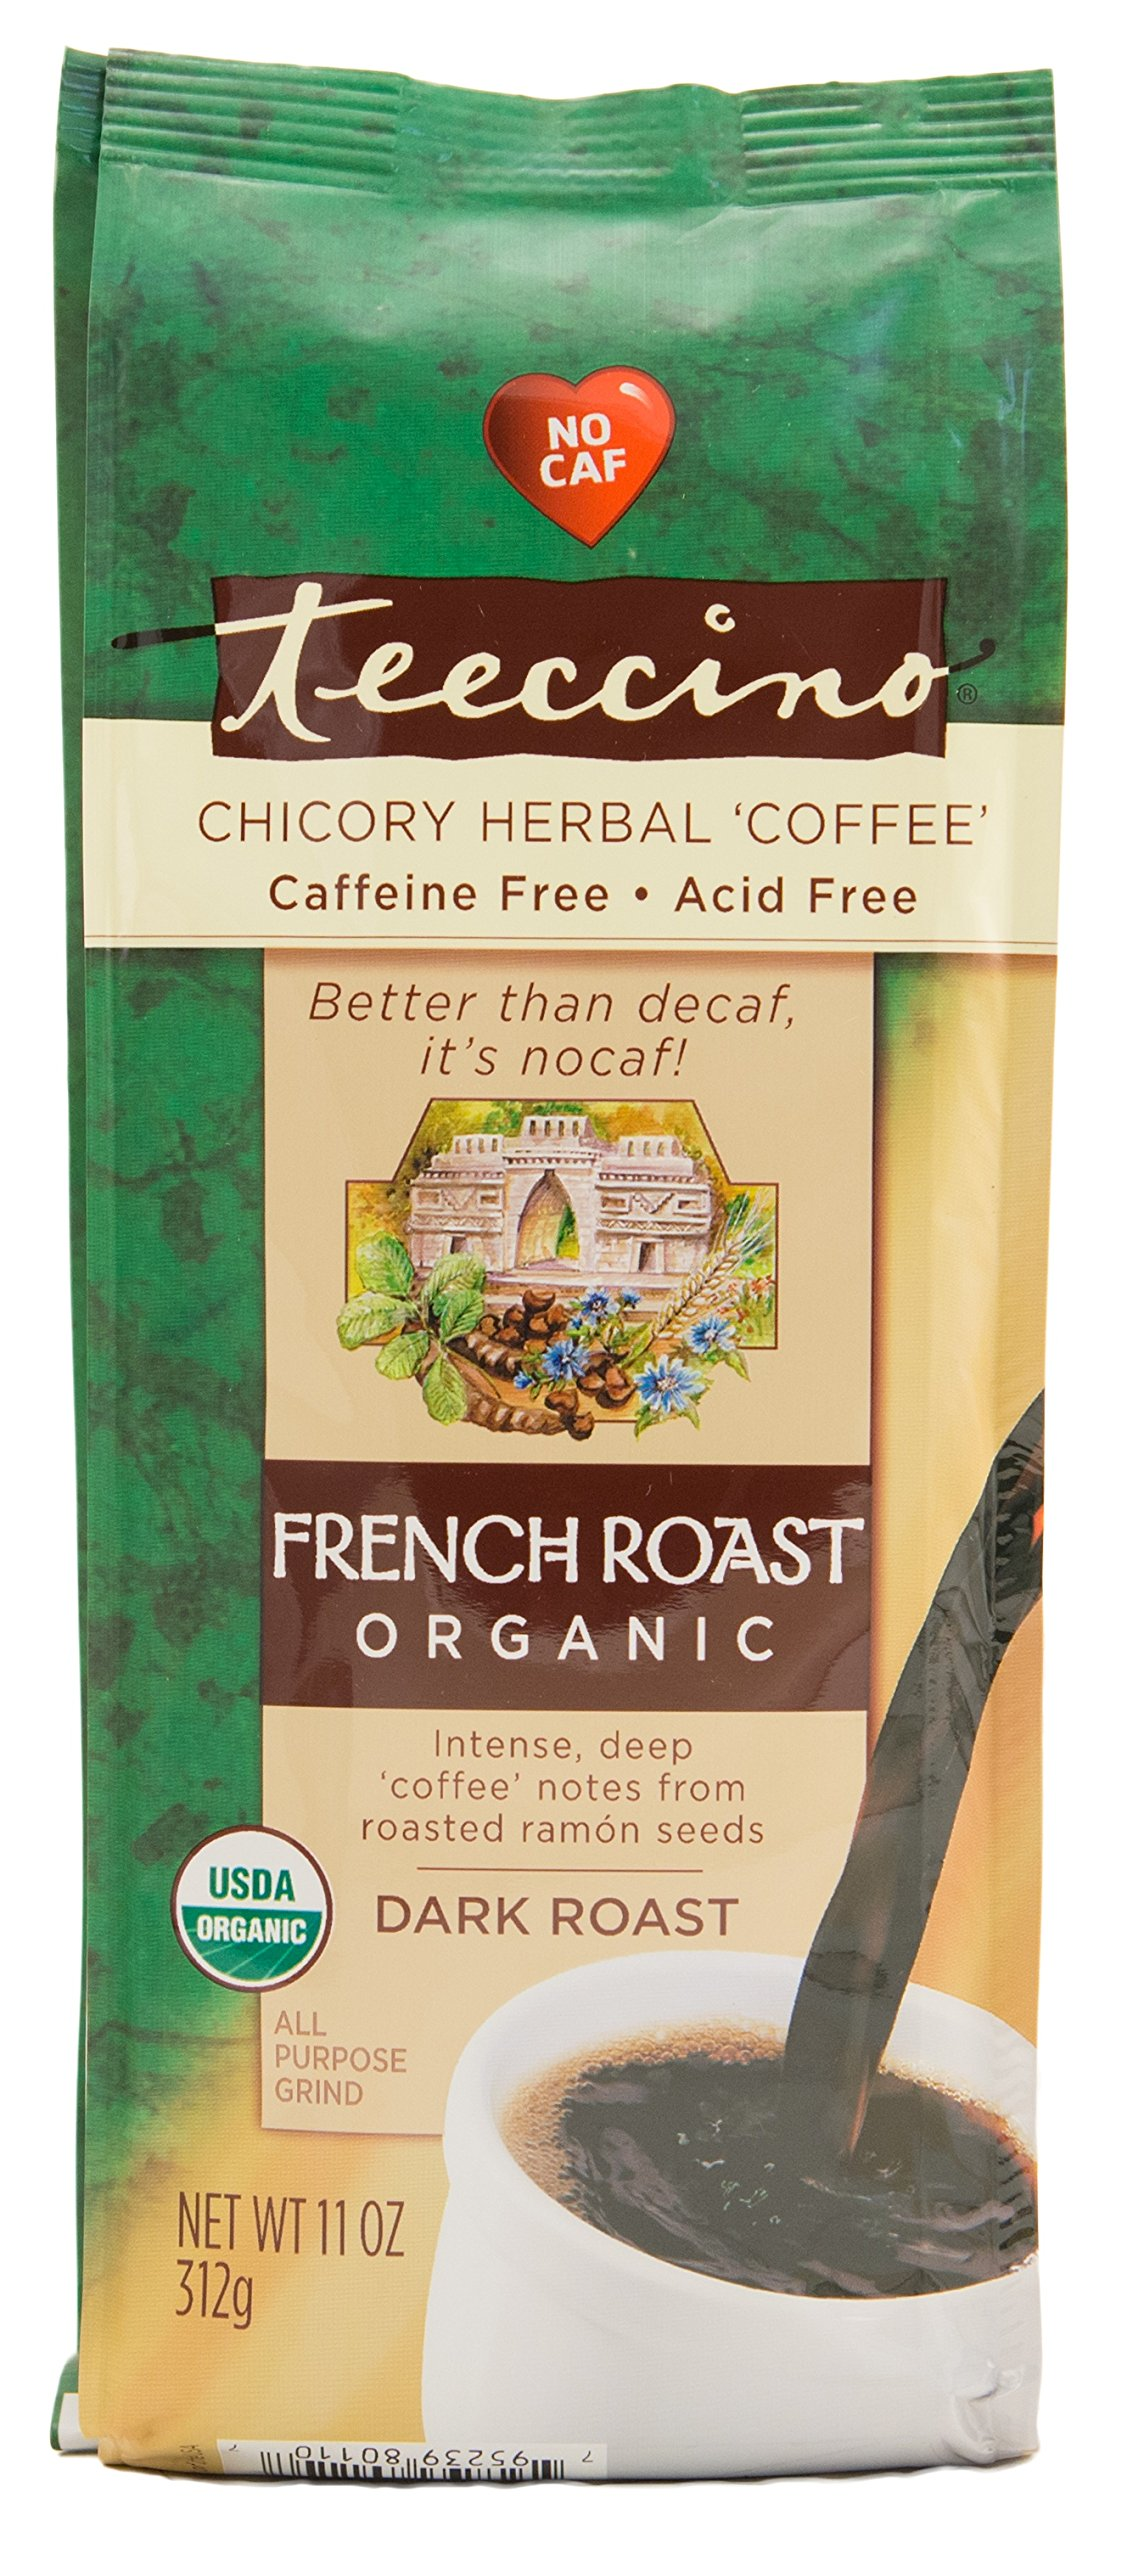 Teeccino French Roast Organic Chicory Herbal Coffee Alternative, Caffeine Free, Acid Free  11 Ounce (Pack of 3)